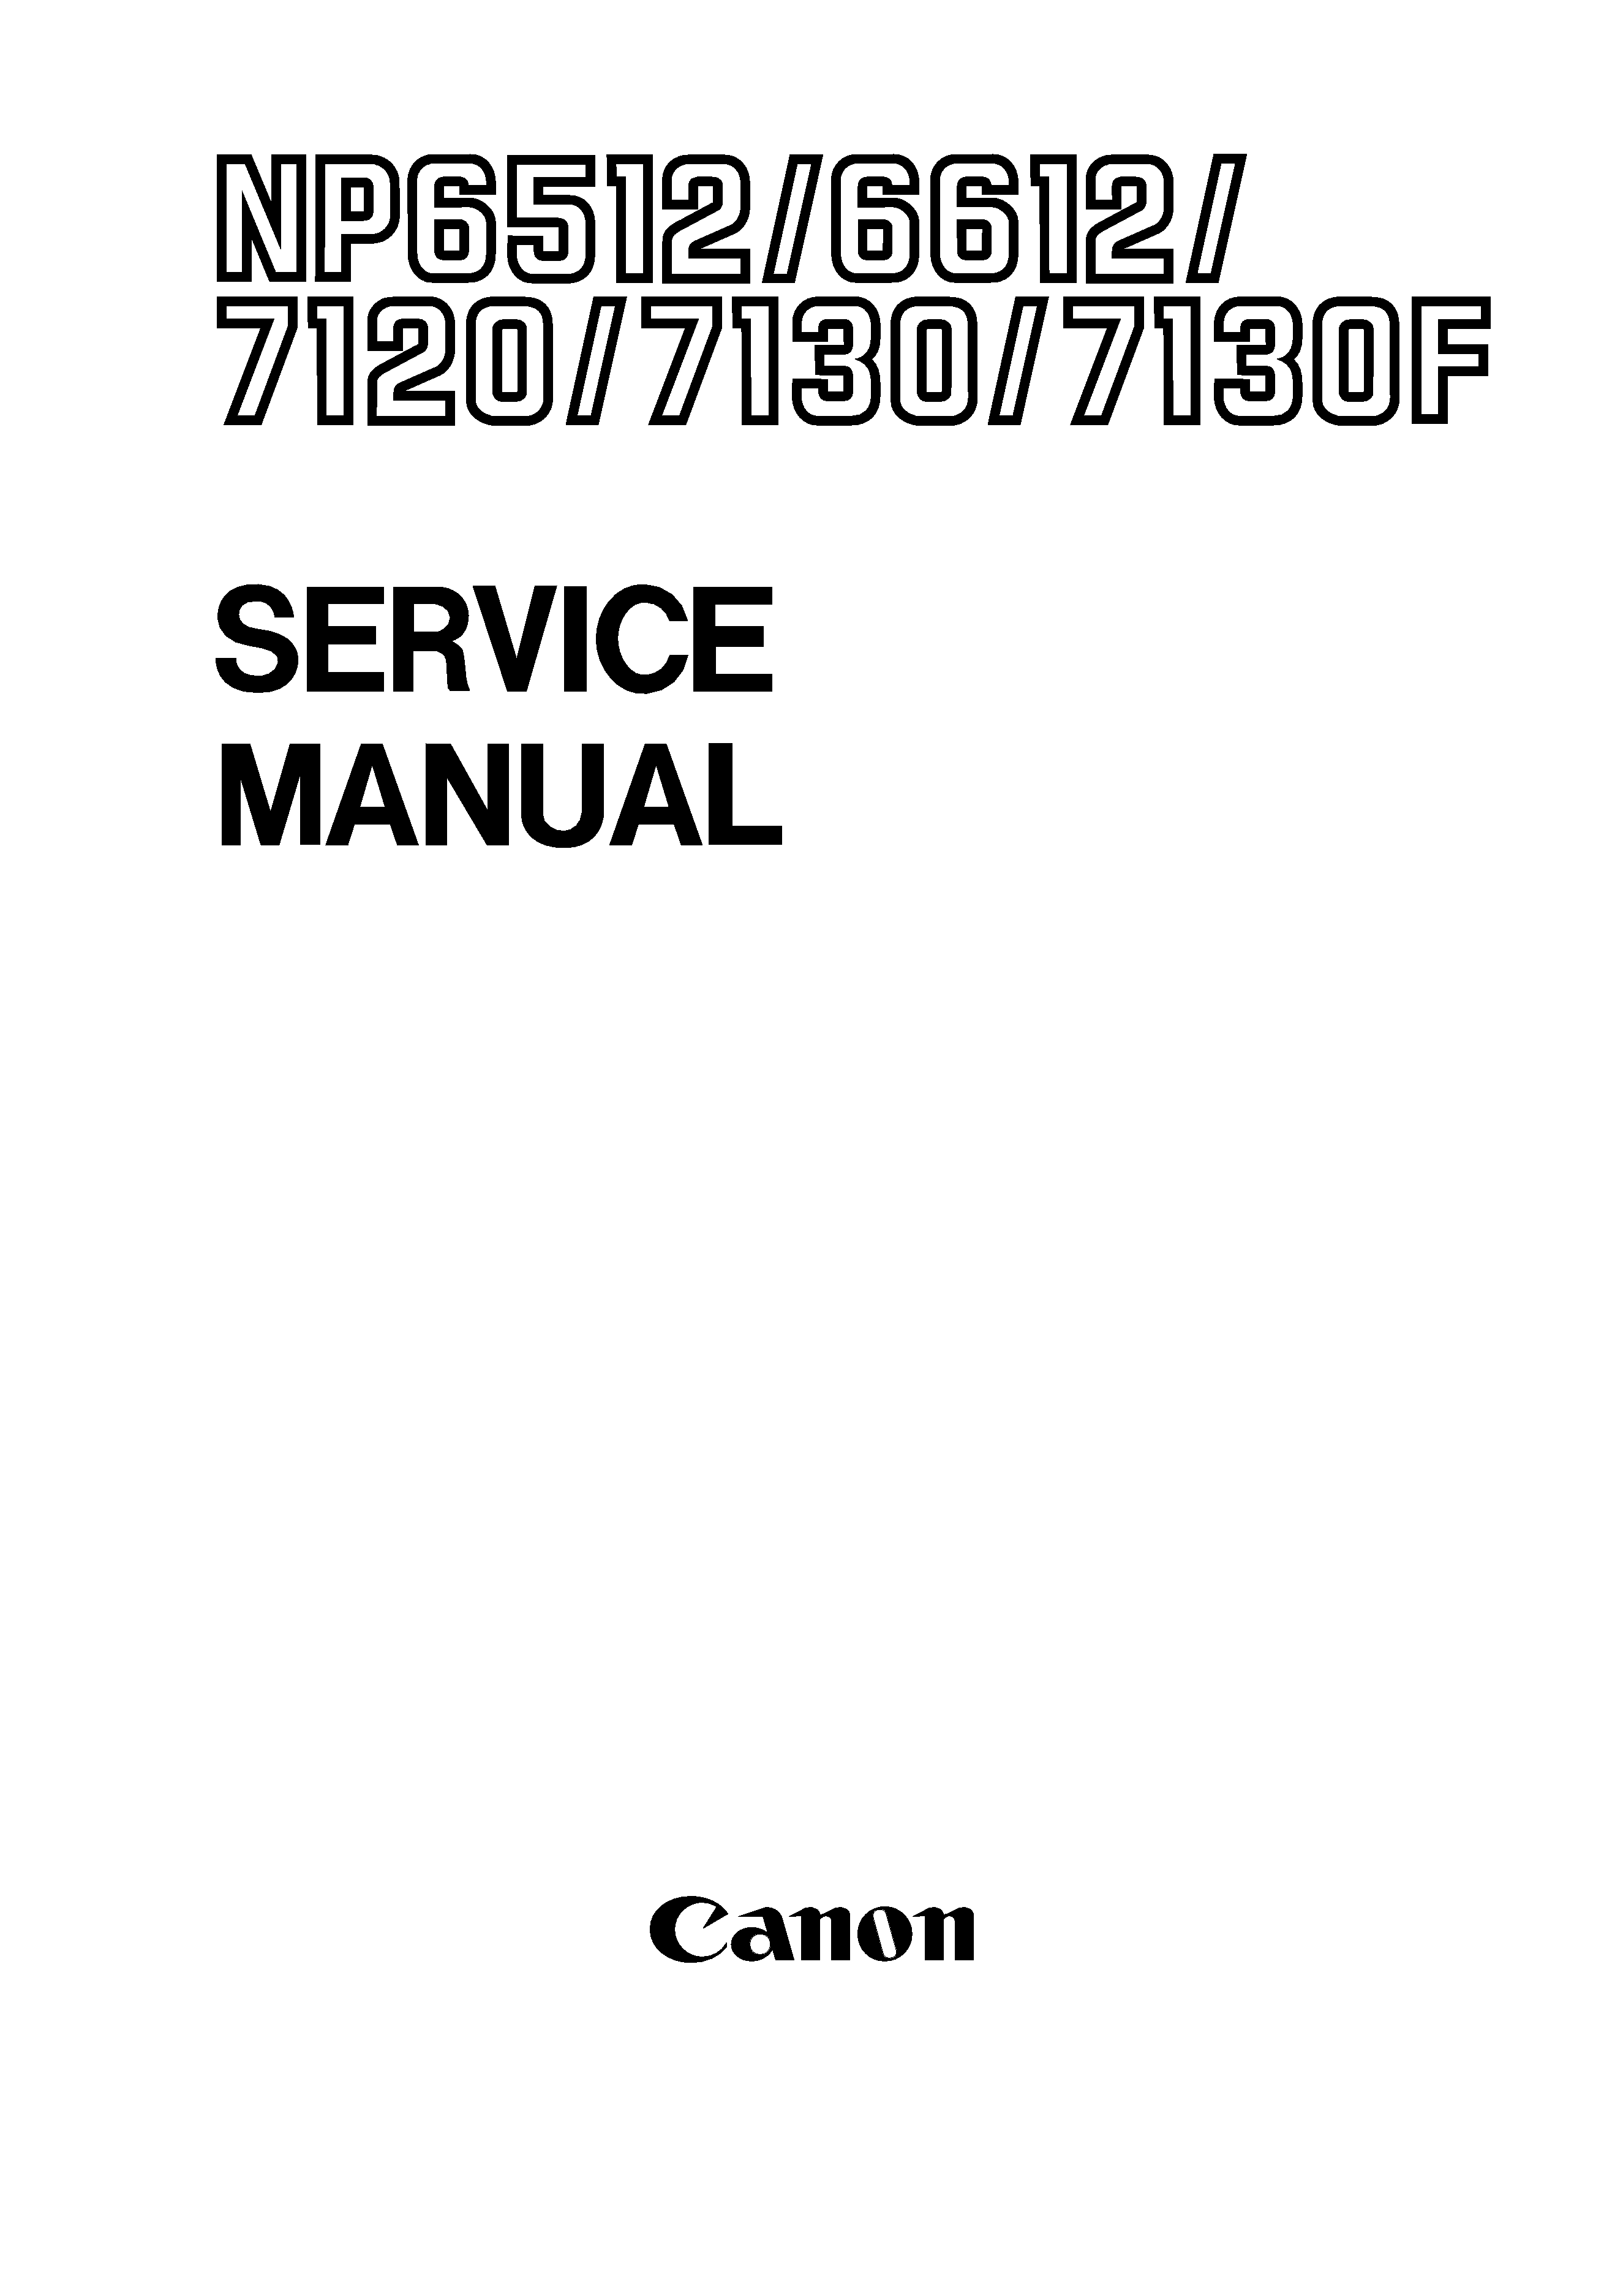 canon np6612 service manual immediate download. Black Bedroom Furniture Sets. Home Design Ideas